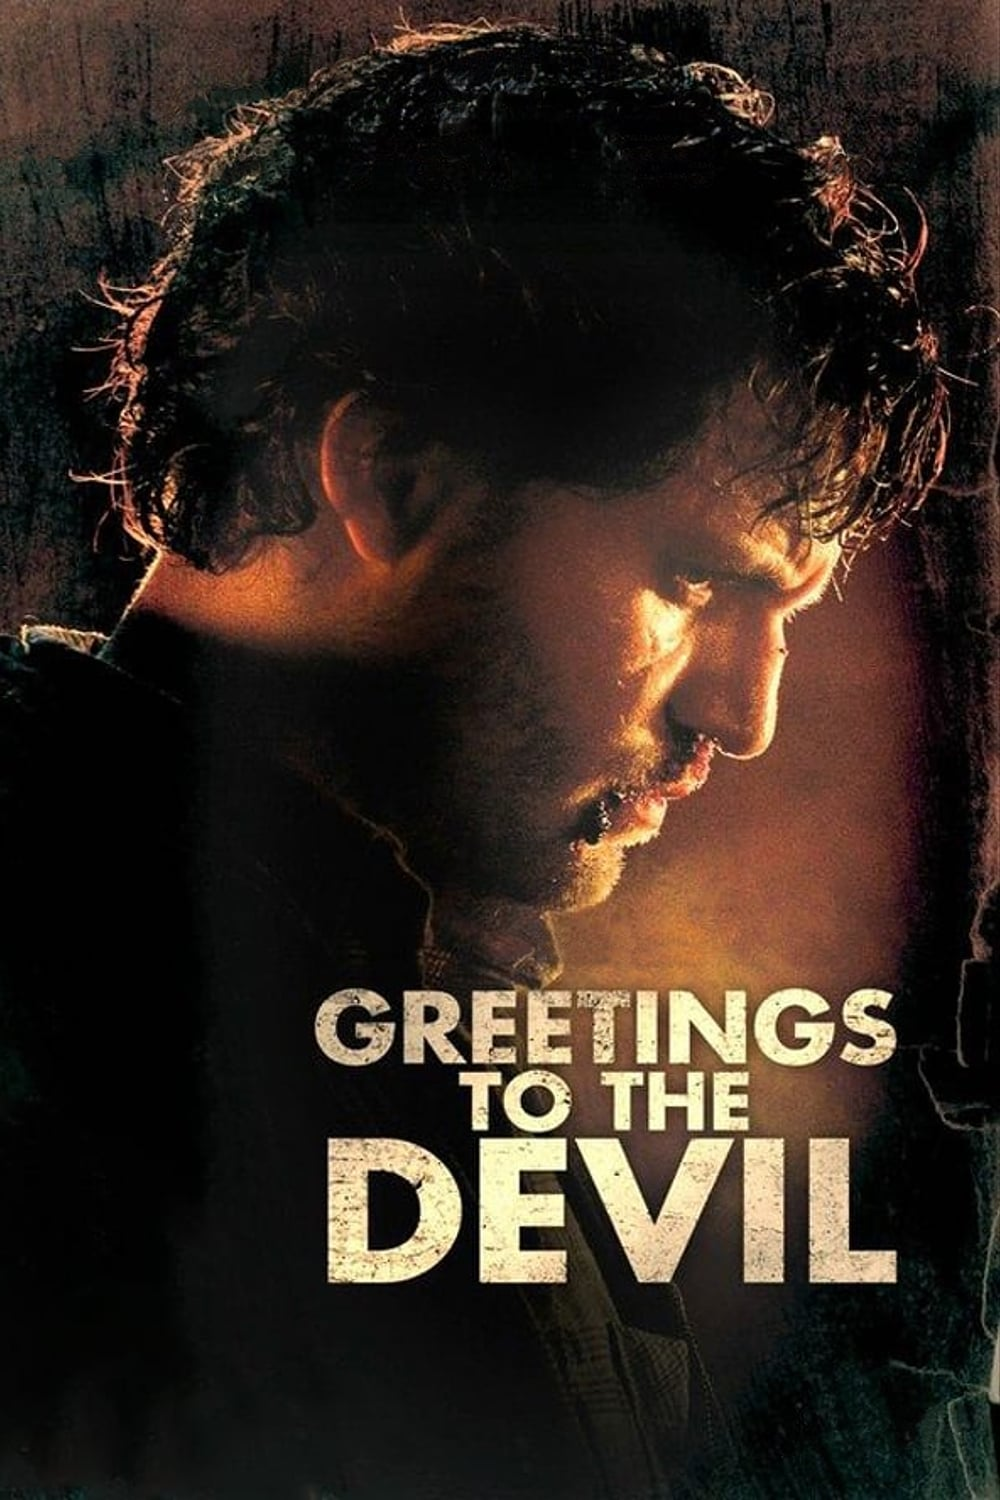 Image Greetings to the Devil